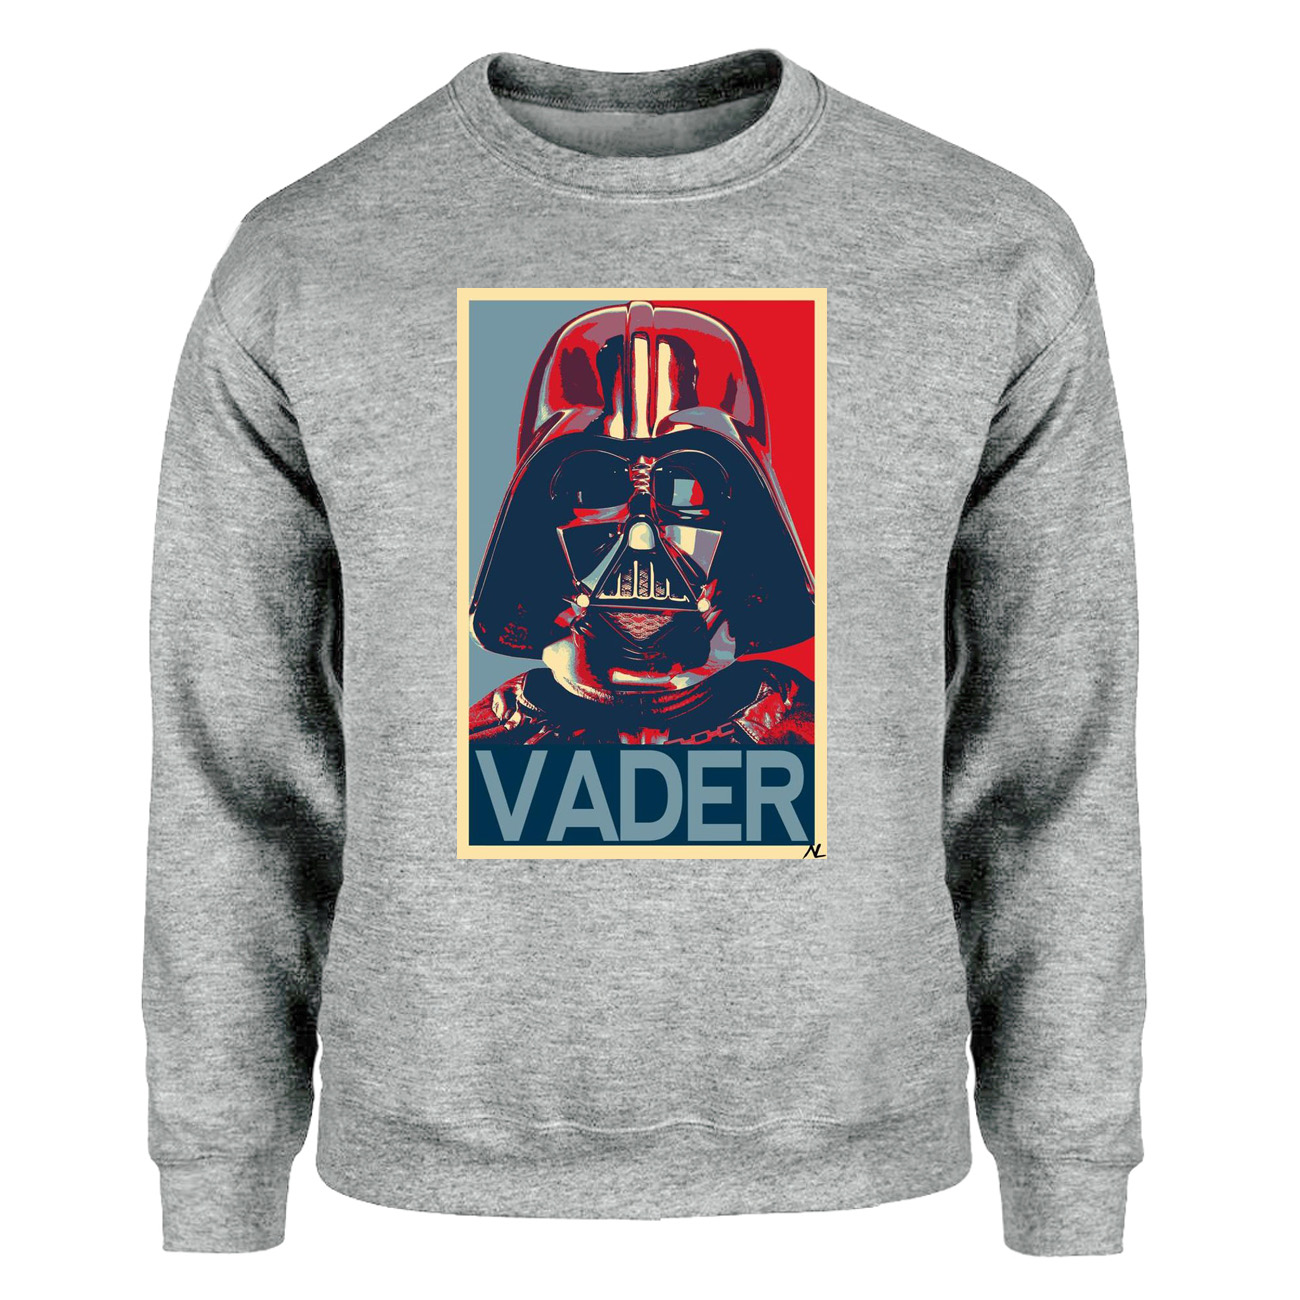 Star Wars Hoodies Sweatshirts Men Darth Vader Crewneck Sweatshirt Winter Autumn Starwars Streetwear Balck Gray White Sportswear